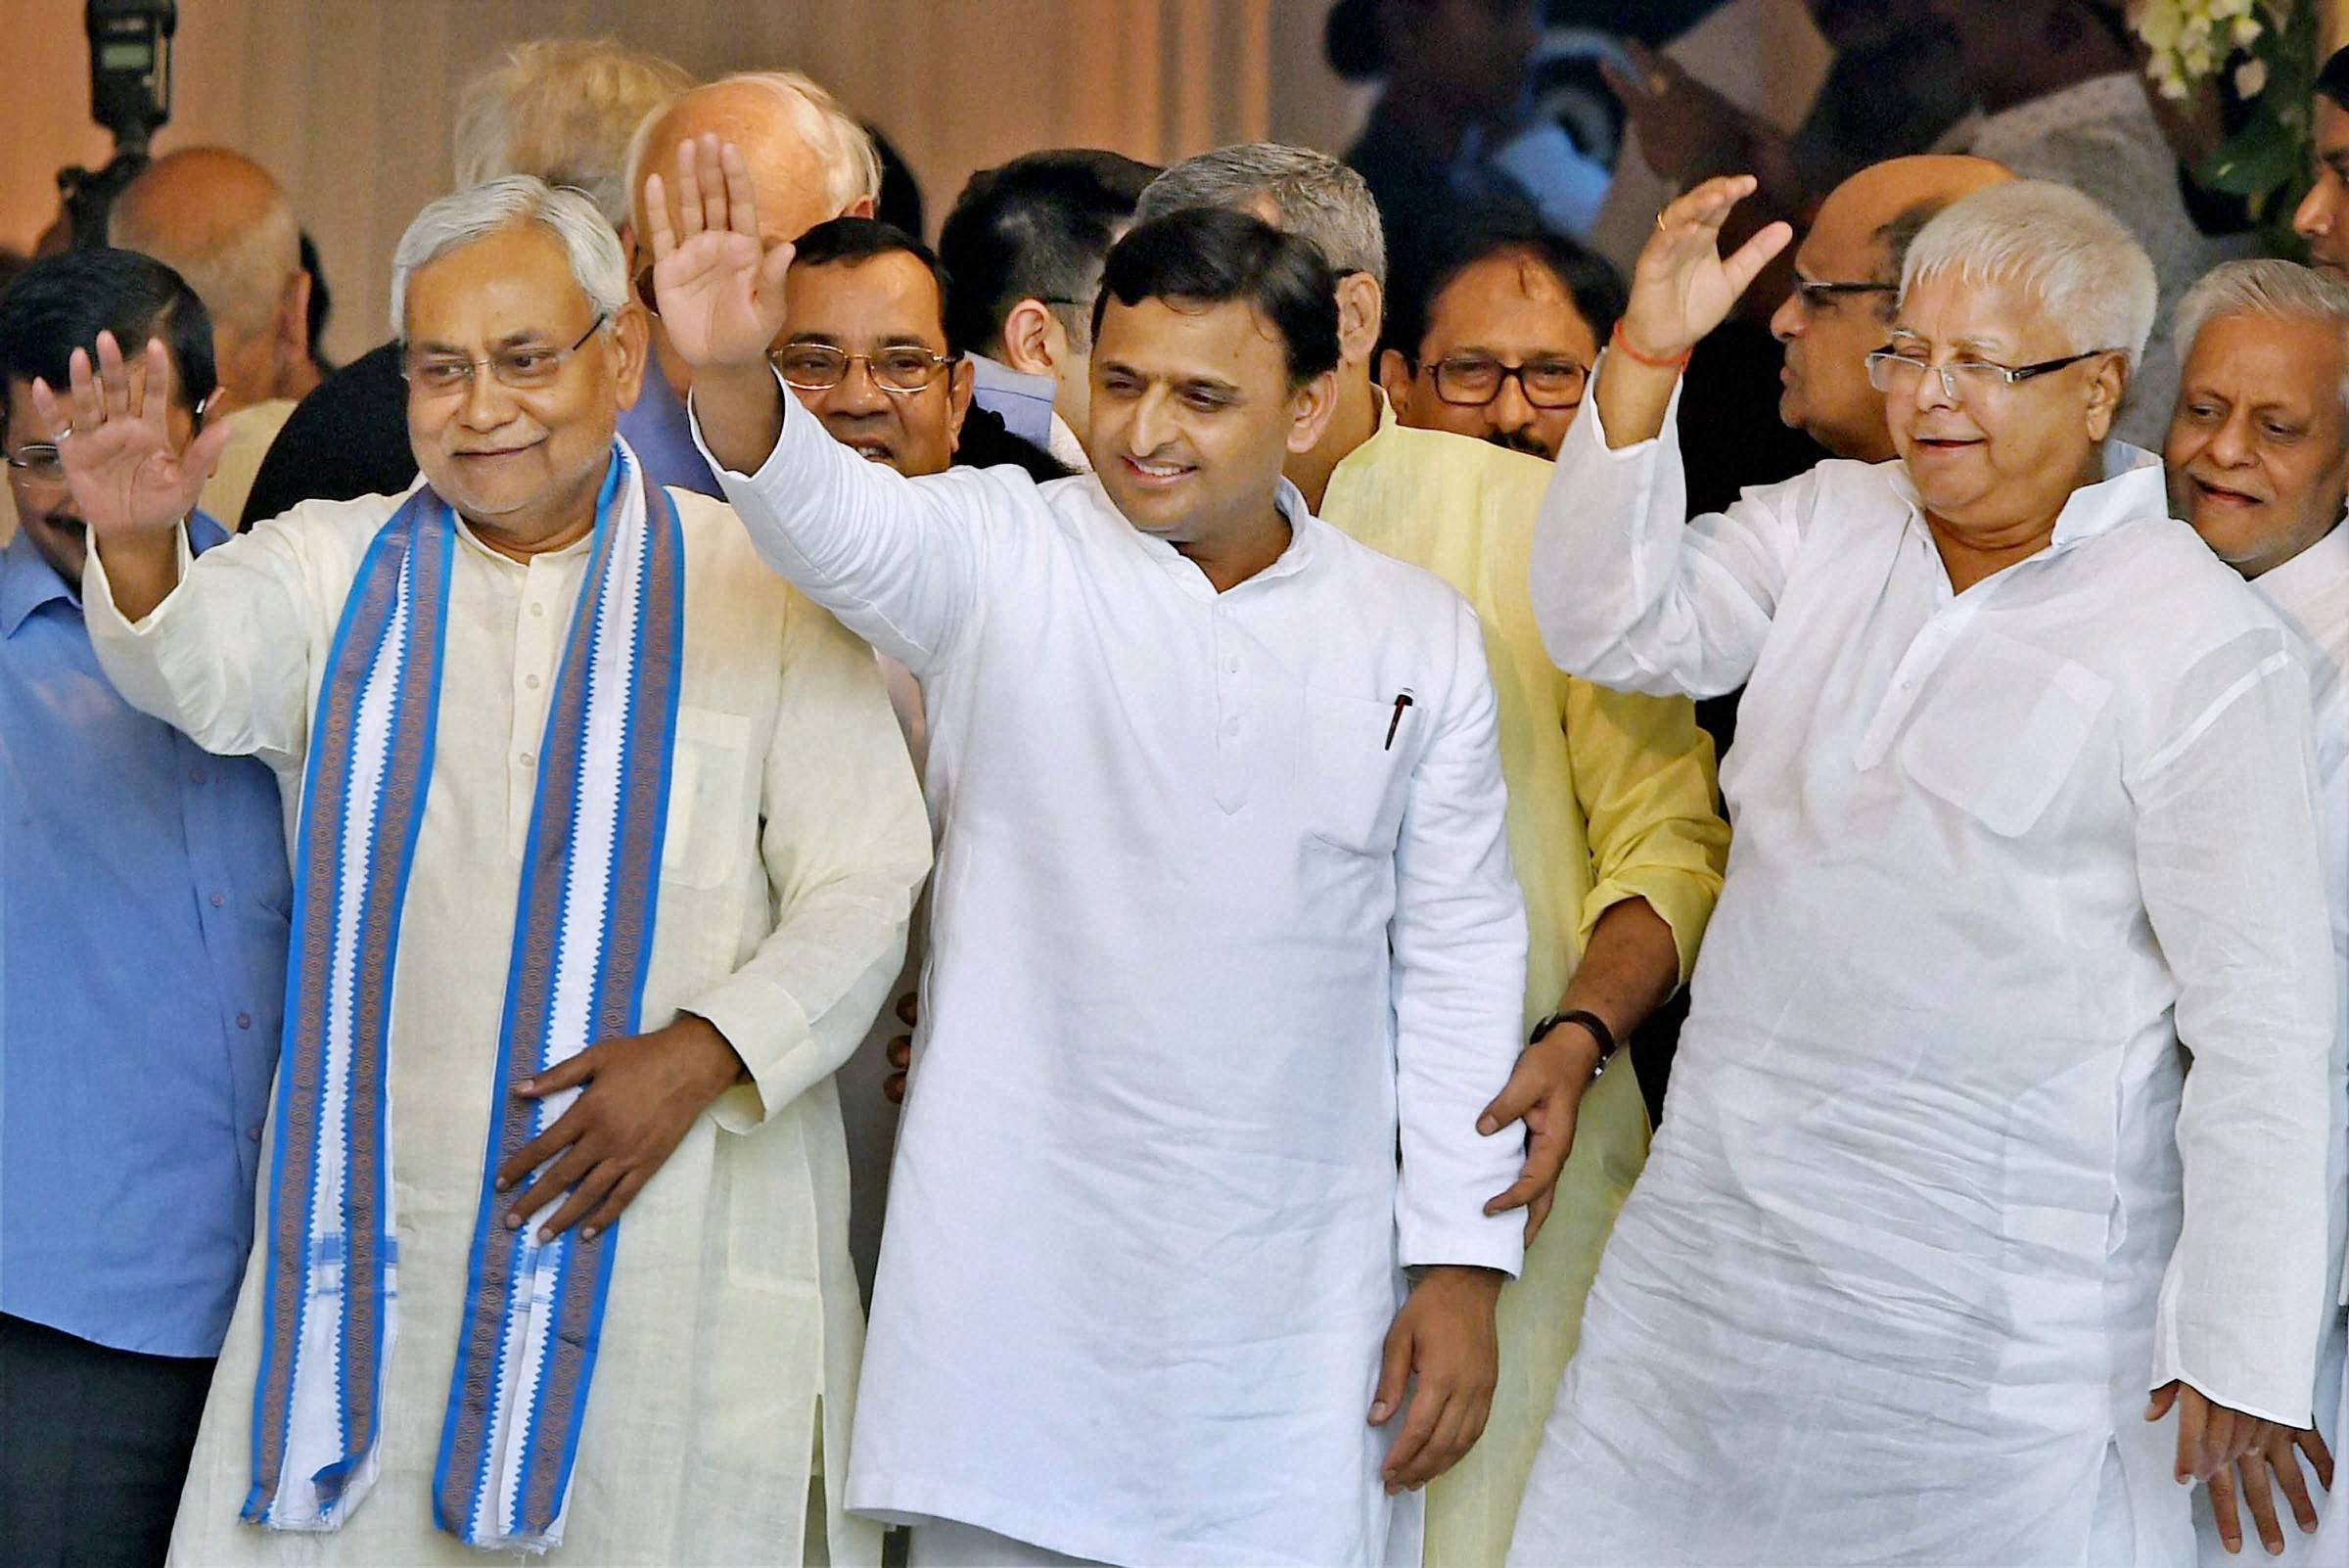 Nitish Kumar, Akhilesh Yadav and Lalu Prasad Yadav at Mamata Banerjee's swearing in ceremony as West Bengal chief minister. Image: PTI